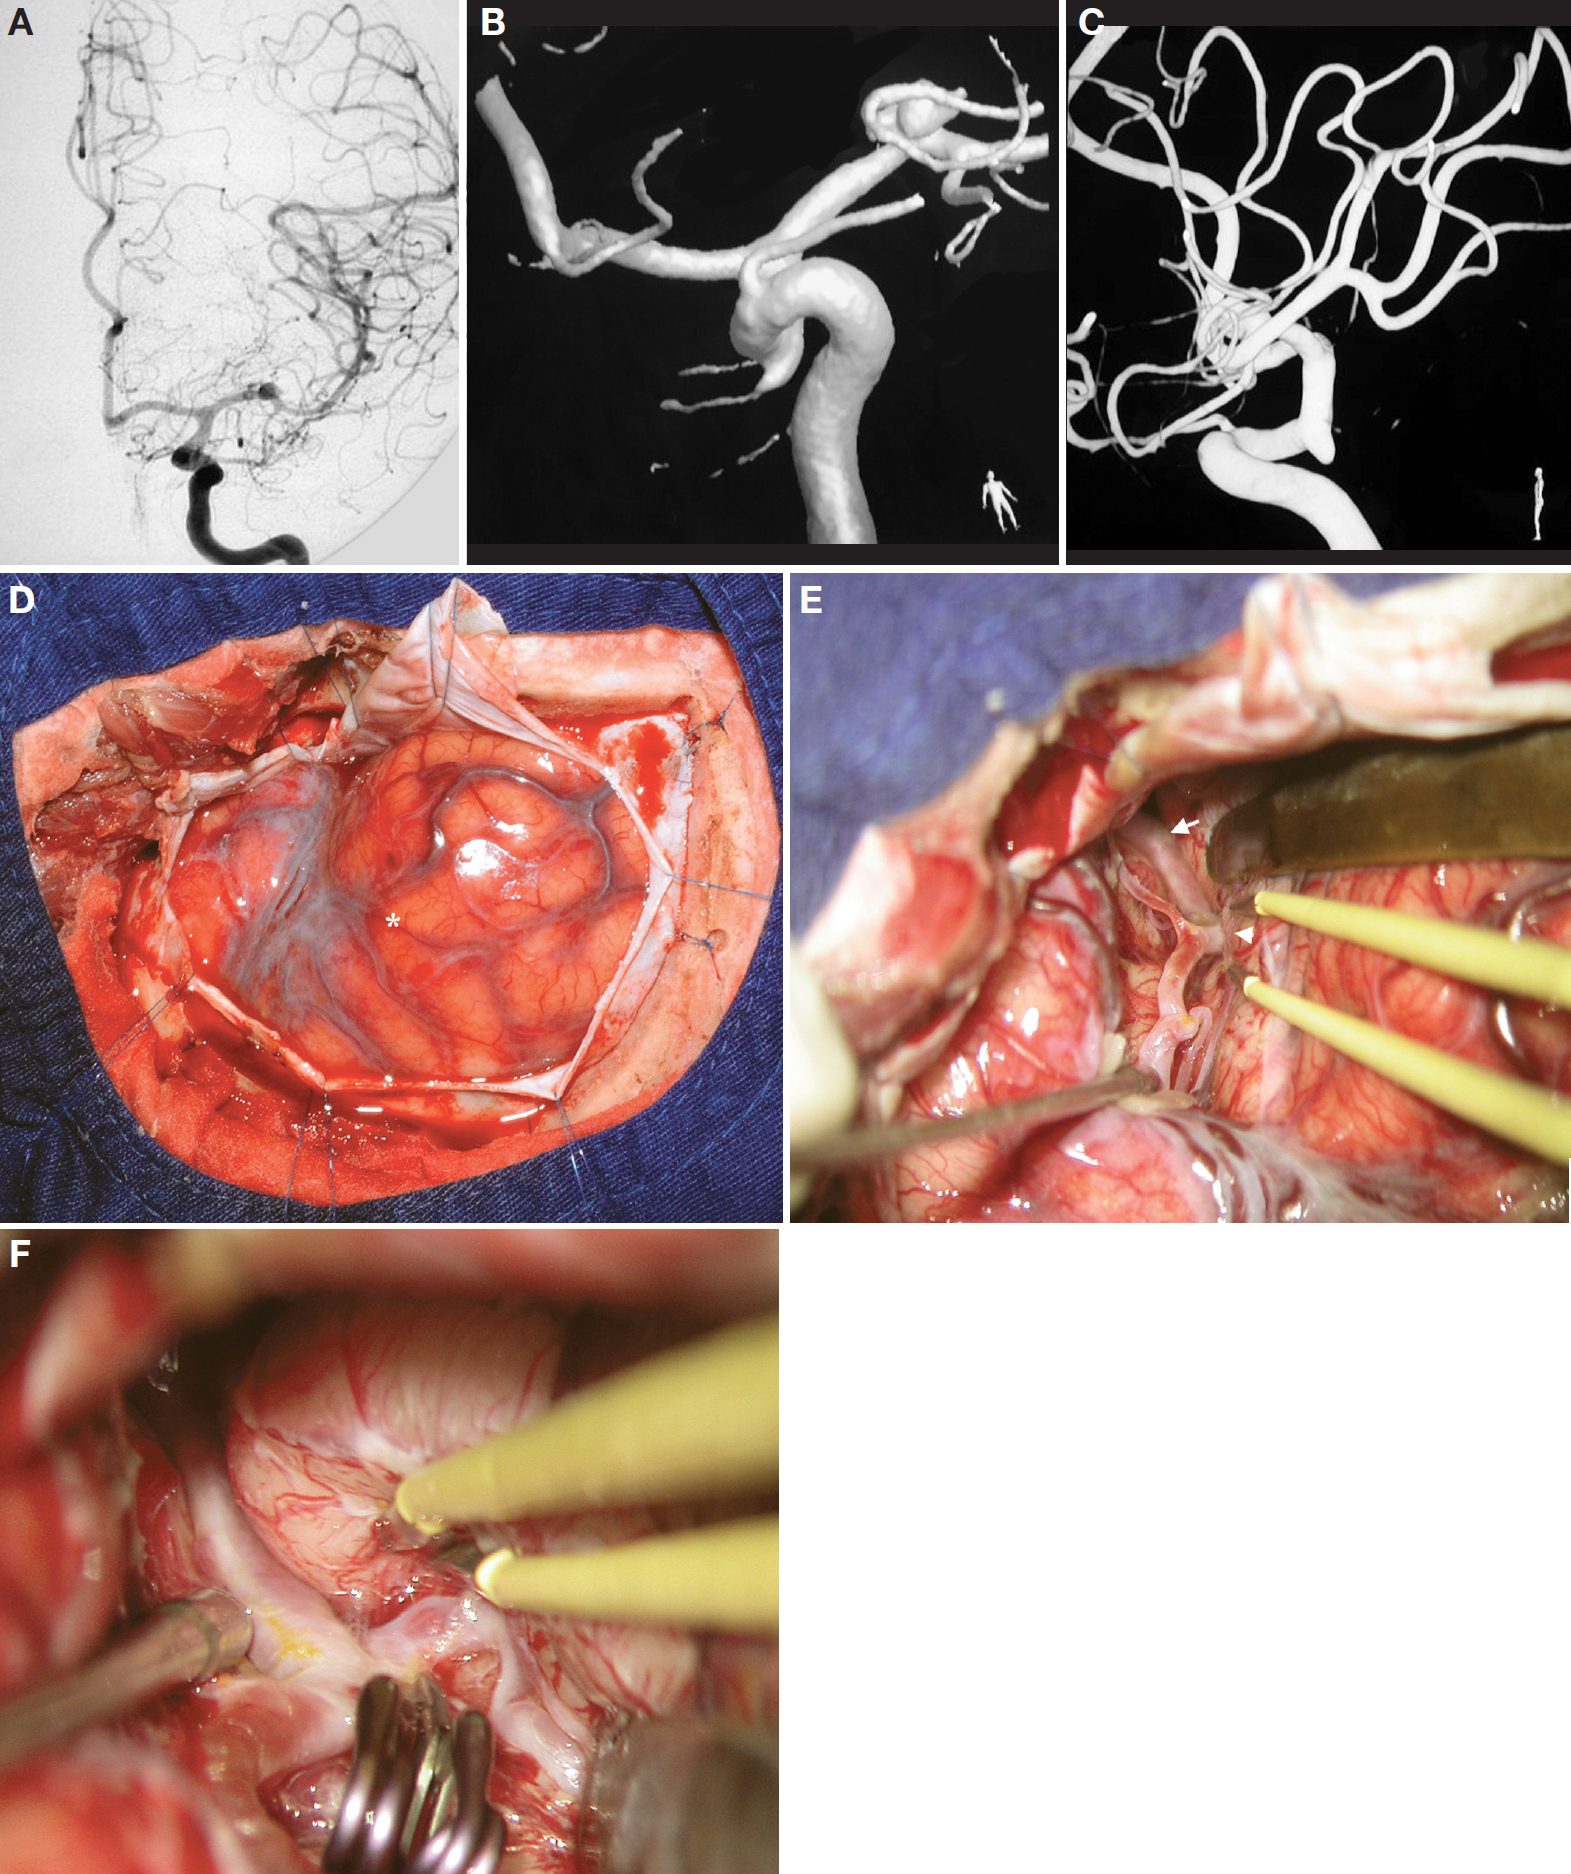 Figure 15. A, AP view of a left carotid angiography depicting an MCA aneurysm arising approximately midway between the carotid bifurcation and the genu of the MCA. B, angiography-computed tomographic (CT) scan with 3-dimensional reconstruction showing the same aneurysm. C, angiography-CT scan with 3-dimensional reconstruction, lateral view. D, exposure after a left pterional craniotomy and dural opening. asterisk, pars triangularis. E, the sylvian fissure was split proximal to the pars triangularis (asterisk). Arrow indicates the carotid bifurcation. The arrowhead indicates the location of the aneurysm. Note the distance between the pars triangularis and the location of the aneurysm. F, the aneurysm was clipped, and the frontal branch of the MCA bifurcation was identified. (Images courtesy of AL Rhoton, Jr.)